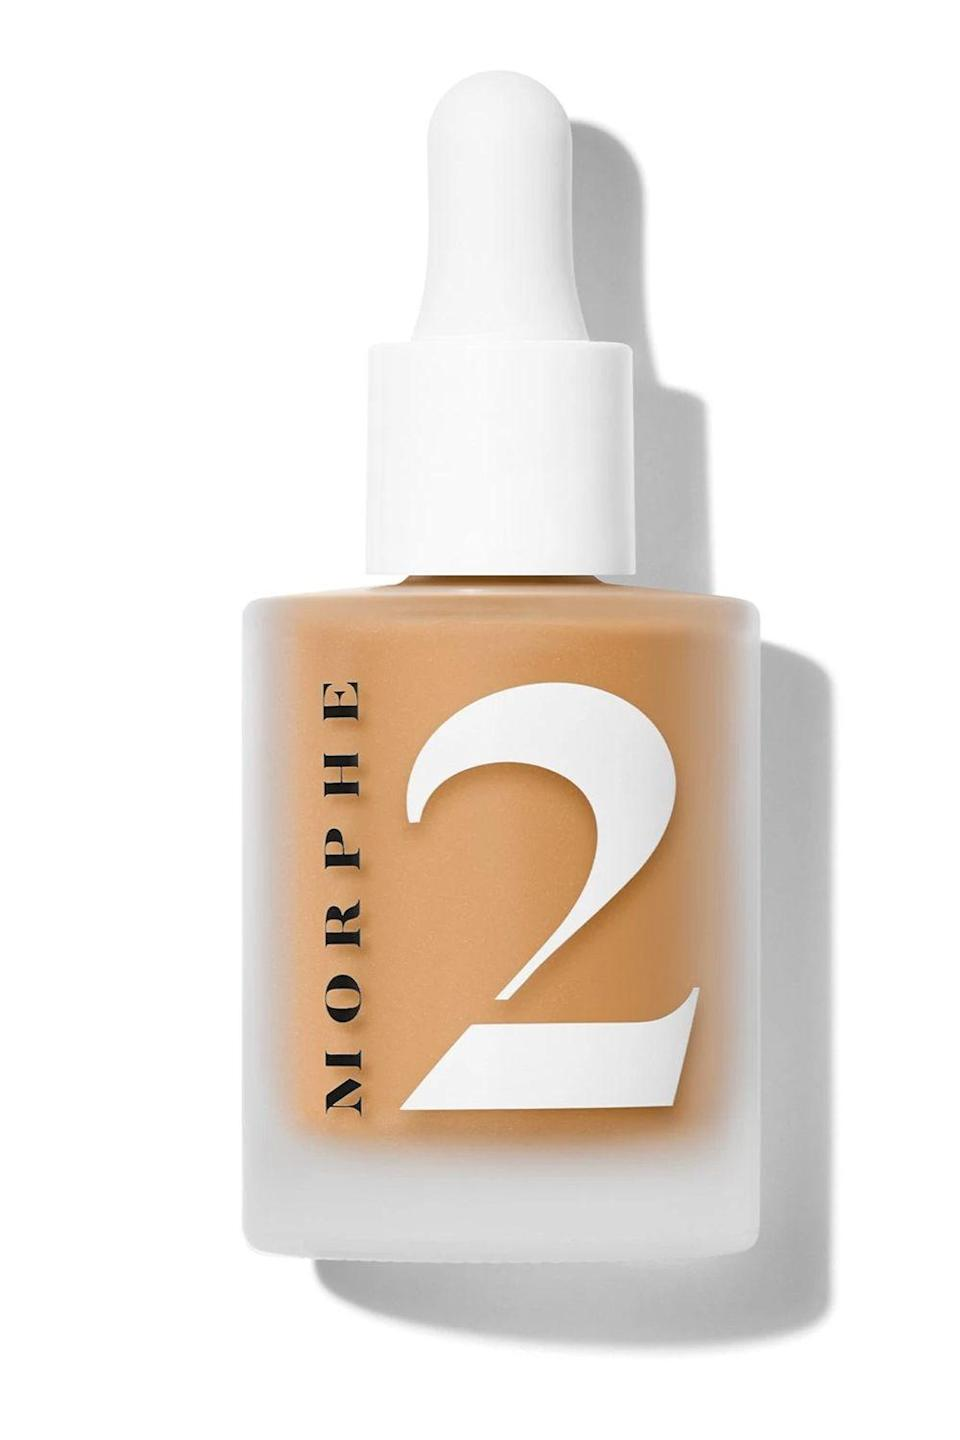 """<p><strong>Morphe</strong></p><p>ulta.com</p><p><strong>$18.00</strong></p><p><a href=""""https://go.redirectingat.com?id=74968X1596630&url=https%3A%2F%2Fwww.ulta.com%2Fmorphe-2-hint-hint-skin-tint%3FproductId%3Dpimprod2017569&sref=https%3A%2F%2Fwww.cosmopolitan.com%2Fstyle-beauty%2Fbeauty%2Fg36094404%2Fbest-skin-tints%2F"""" rel=""""nofollow noopener"""" target=""""_blank"""" data-ylk=""""slk:Shop Now"""" class=""""link rapid-noclick-resp"""">Shop Now</a></p><p>Behold: The perfect <a href=""""https://www.cosmopolitan.com/style-beauty/beauty/a8977017/best-waterproof-makeup-products/"""" rel=""""nofollow noopener"""" target=""""_blank"""" data-ylk=""""slk:water-resistant makeup"""" class=""""link rapid-noclick-resp"""">water-resistant makeup</a> for summer. This skin tint is sweat resistant, and transfer-resistant, so even though it's sheer, it'll still <strong>last for a full 16 hours</strong> (yep, even when it's ridiculously hot and humid and you're sweating like crazy). </p>"""